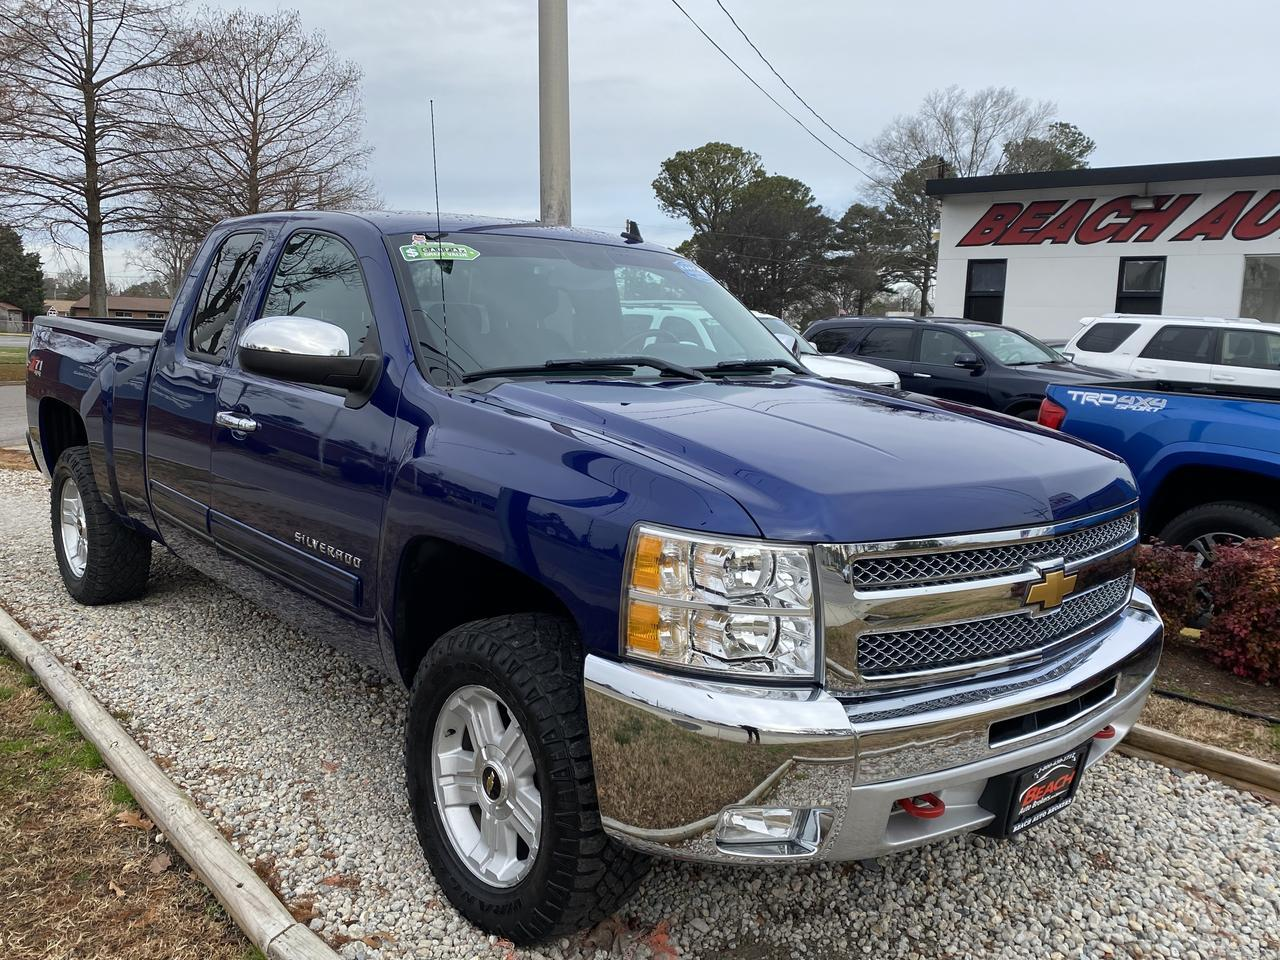 2013 CHEVROLET SILVERADO 1500 LT EXTENDED CAB 4X4, WARRANTY, BLUETOOTH, AUX/USB PORT, TOW PKG, BED LINER, CLEAN CARFAX! Norfolk VA